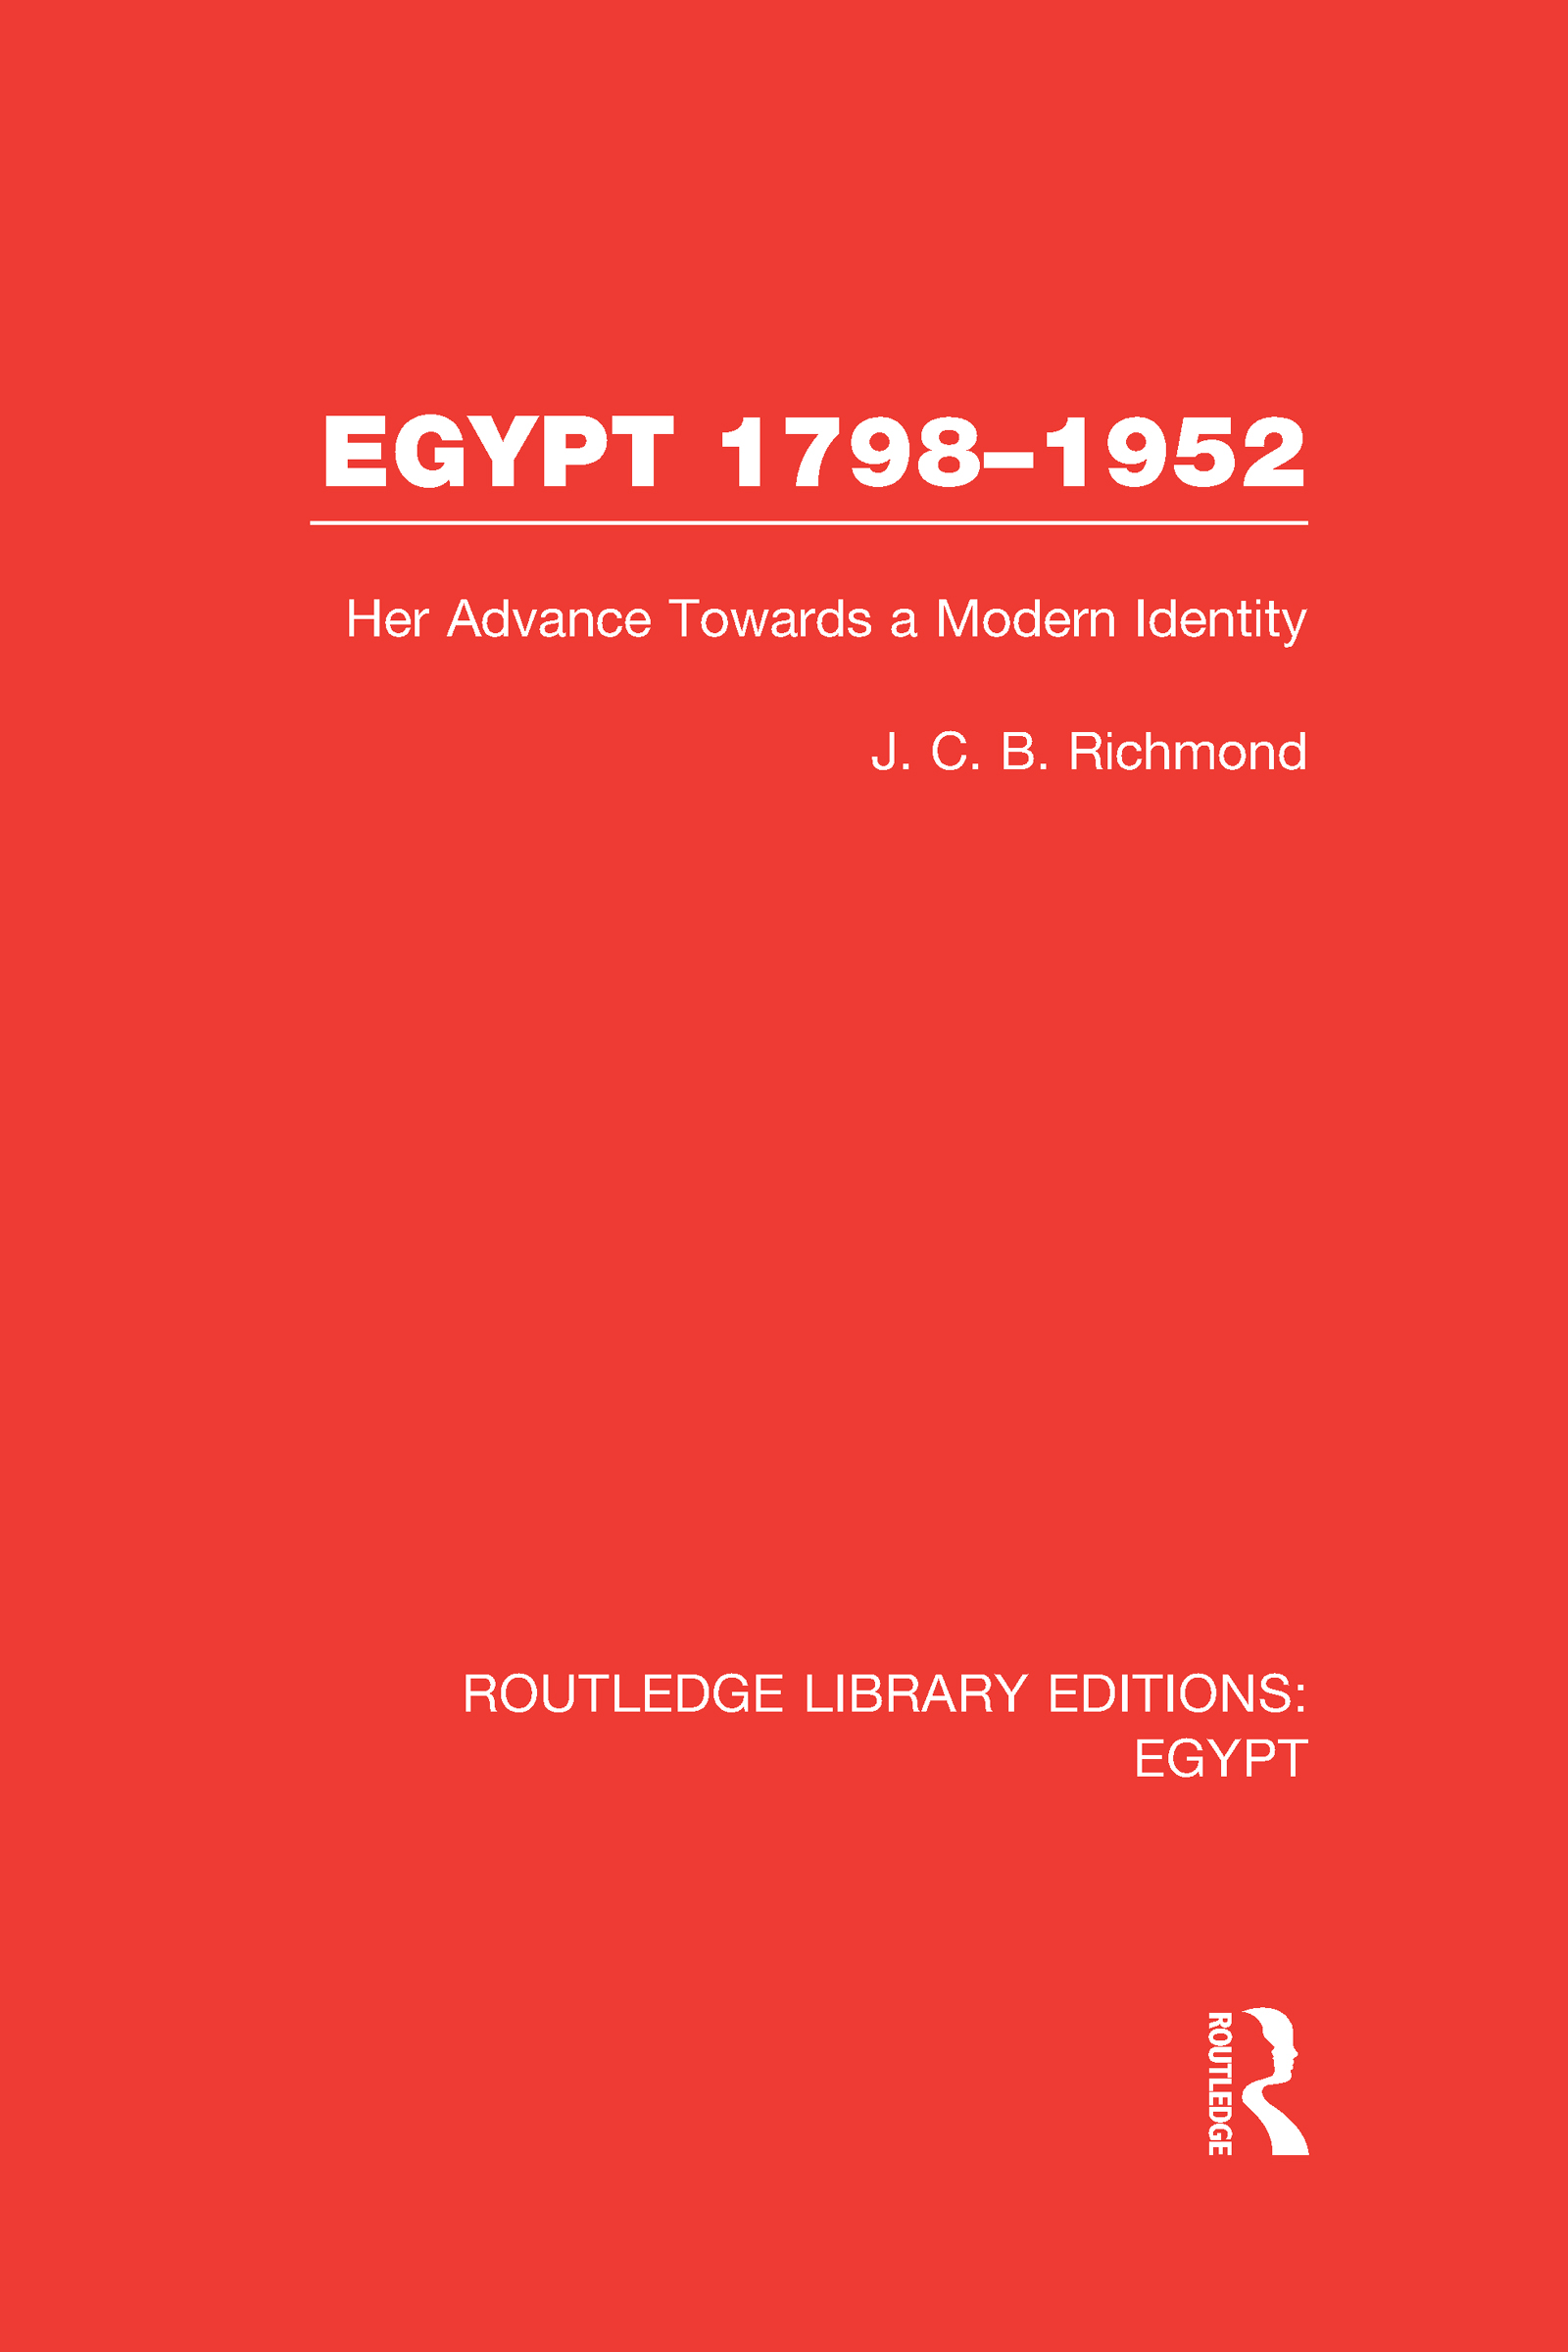 Egypt, 1798-1952 (RLE Egypt): Her Advance Towards a Modern Identity (Hardback) book cover